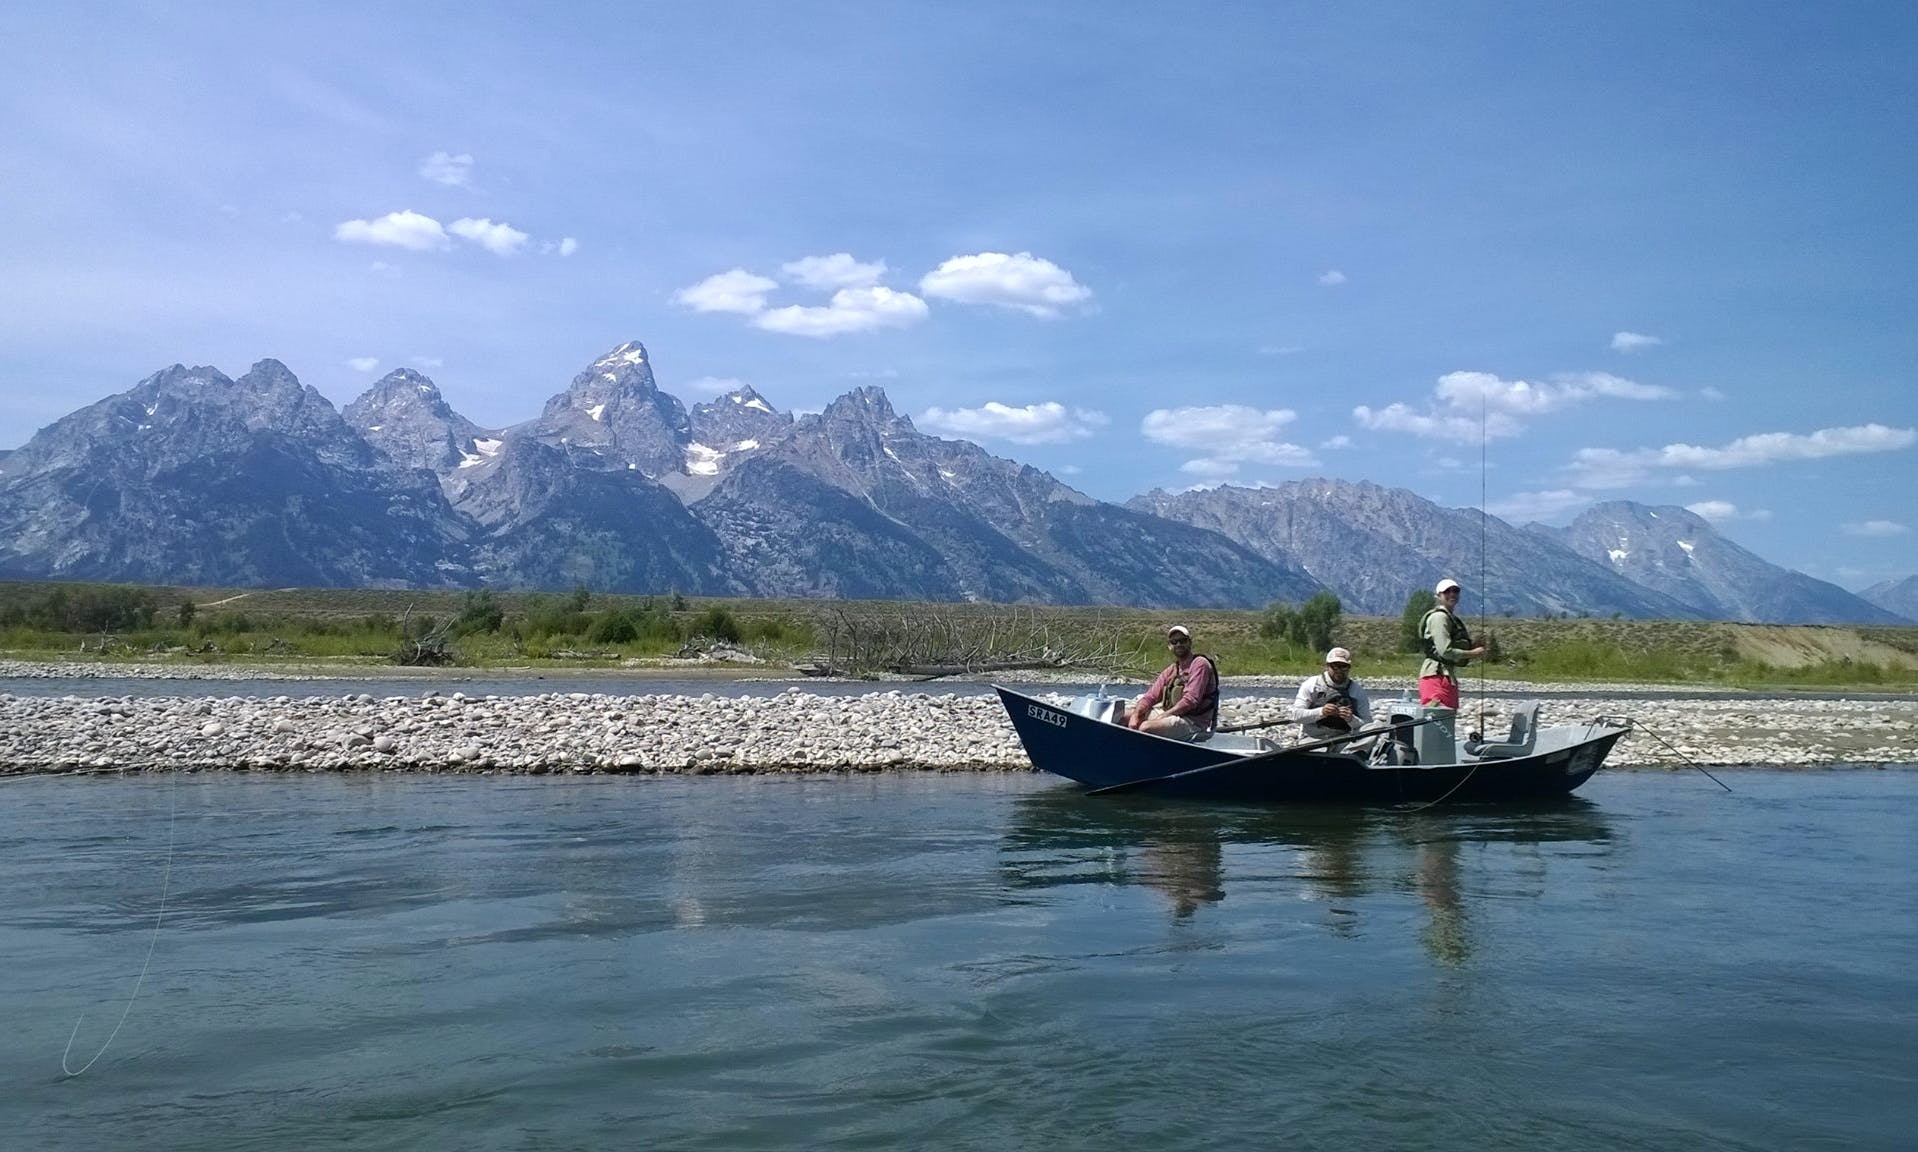 Guided Fishing Trip in Snake River Jackson, WY